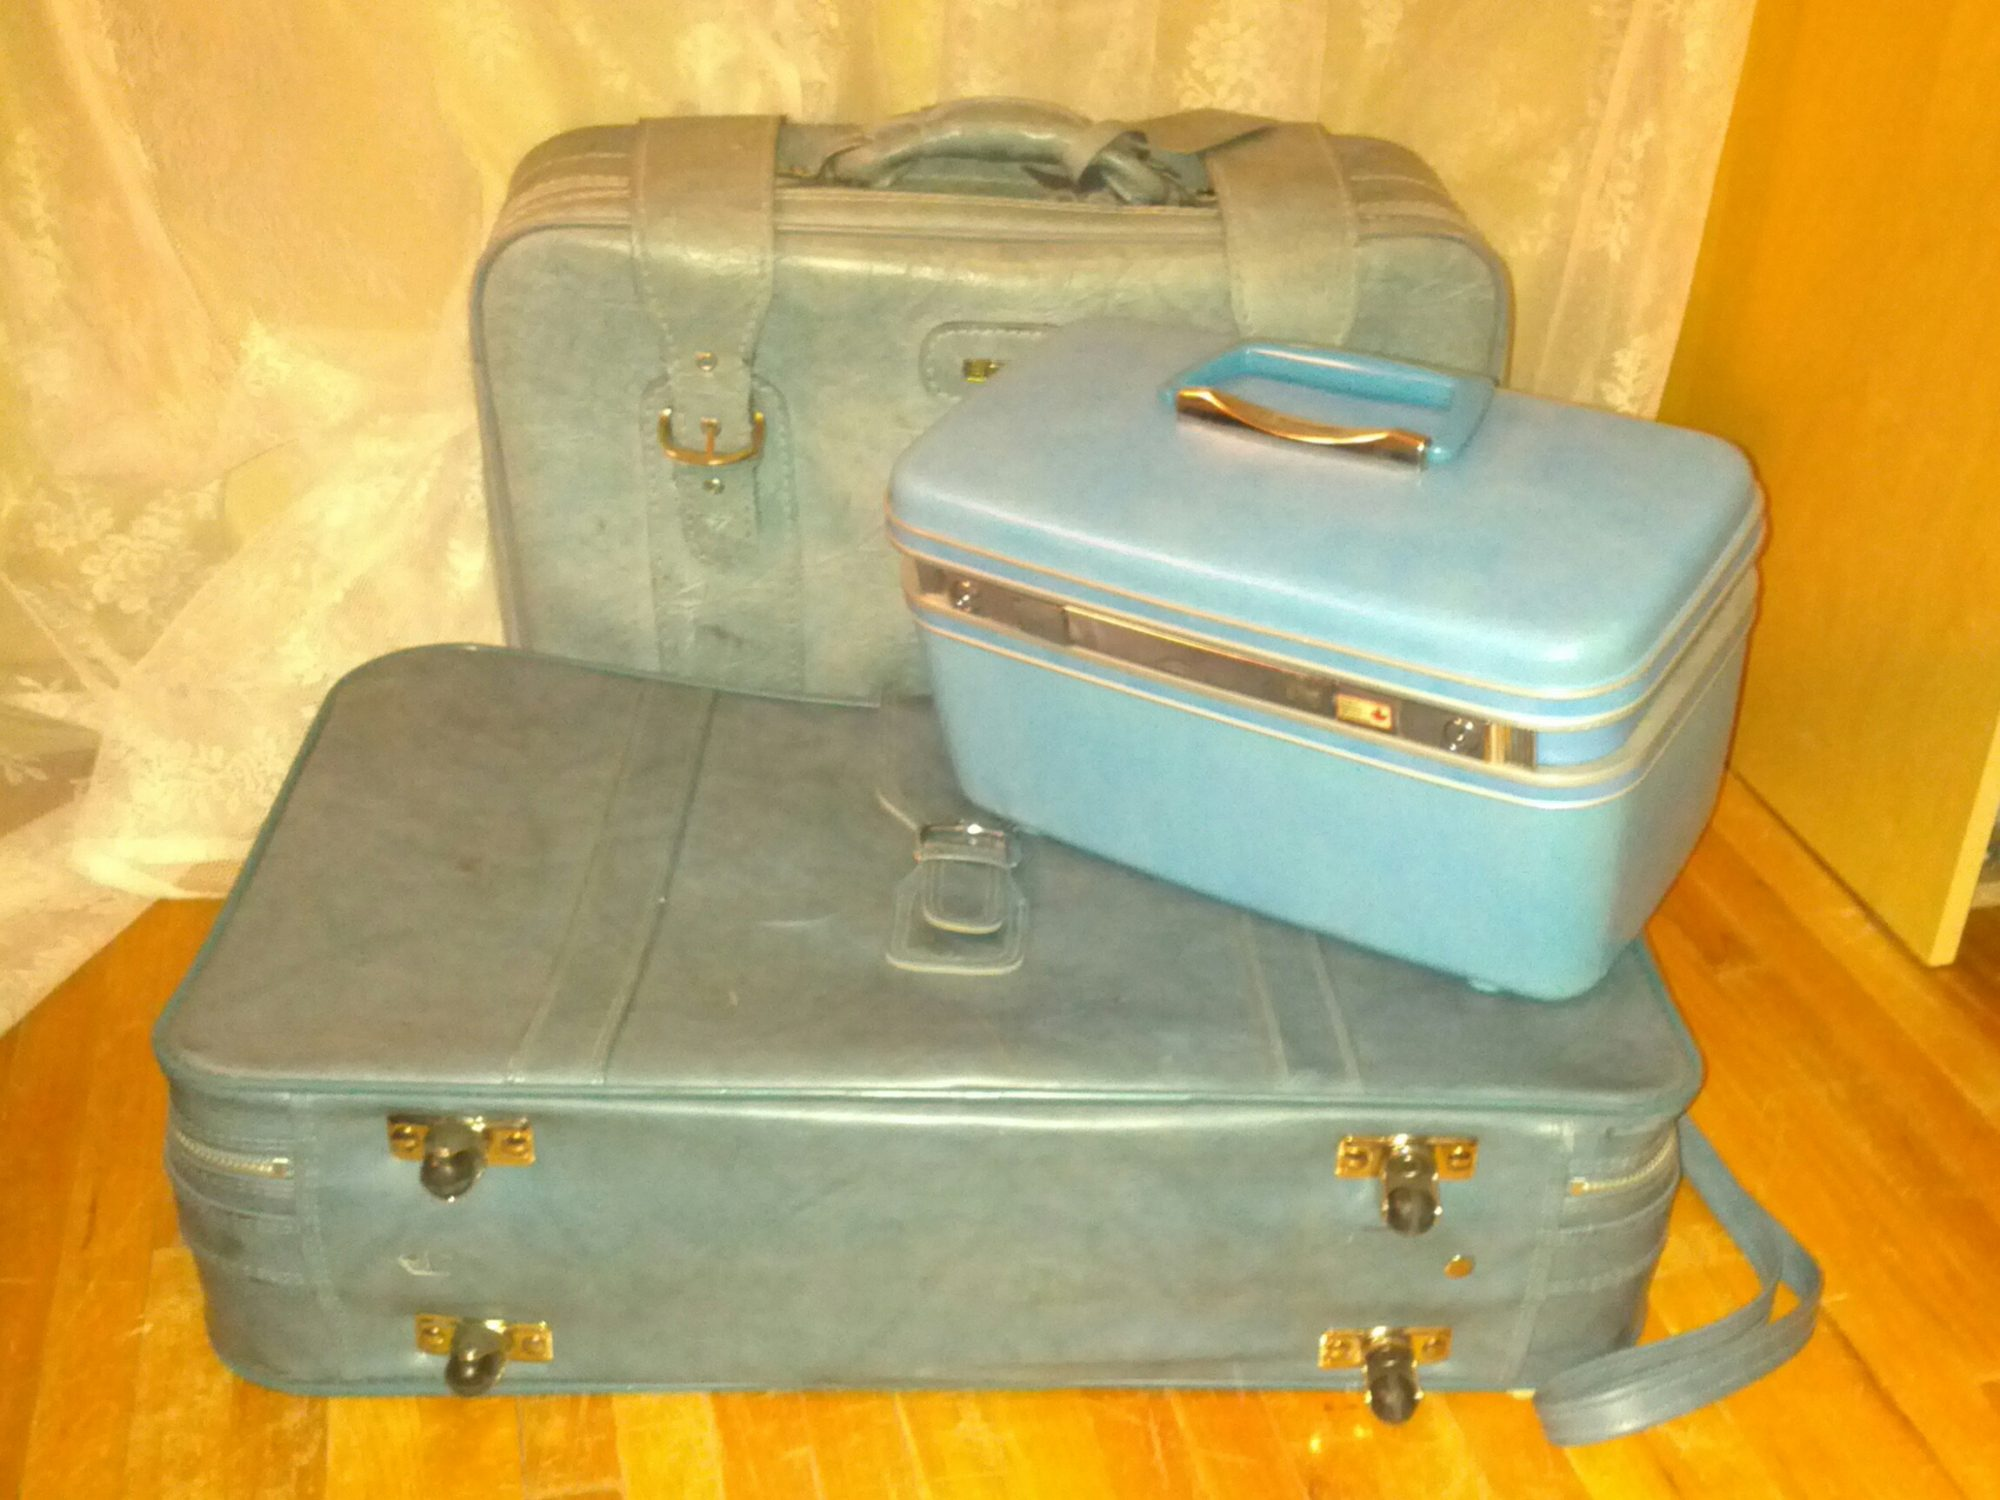 1960s and 1970s 'soft side'  suitcases and airplane carry-on case. Photo credit: Joanna Farley.